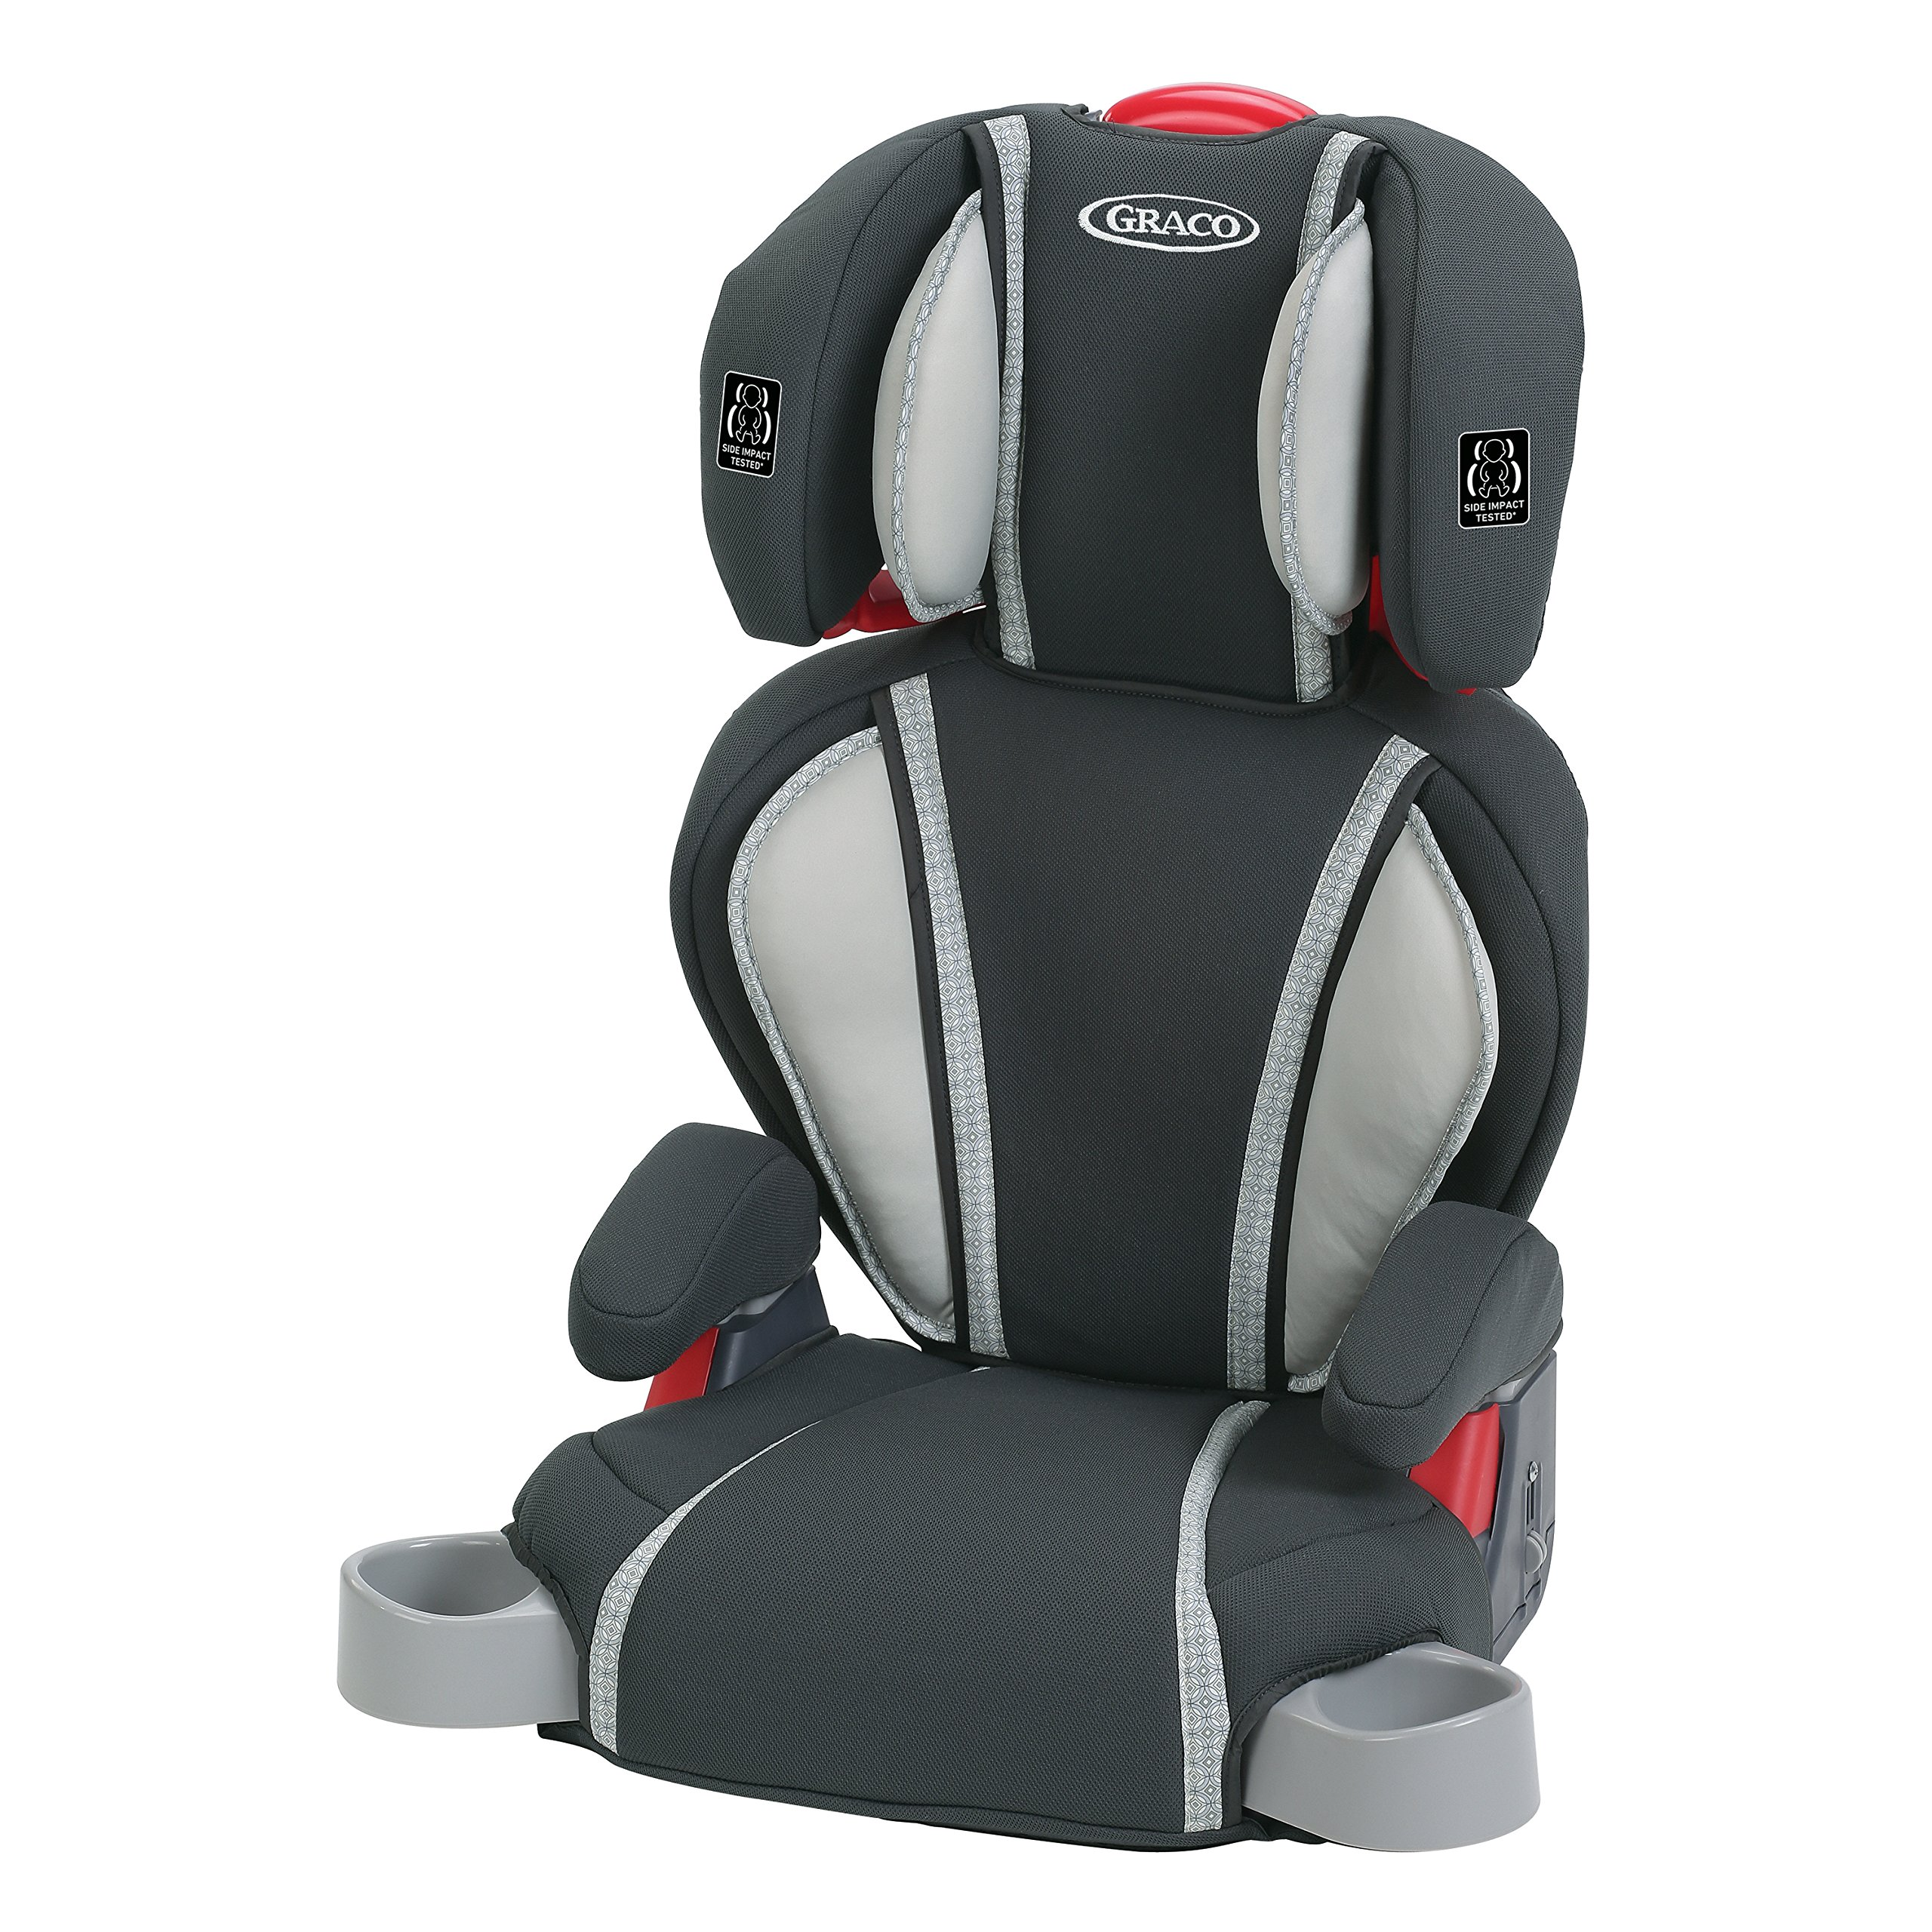 af8ced96d329 Amazon.com   Baby Trend Hybrid Booster 3-in-1 Car Seat